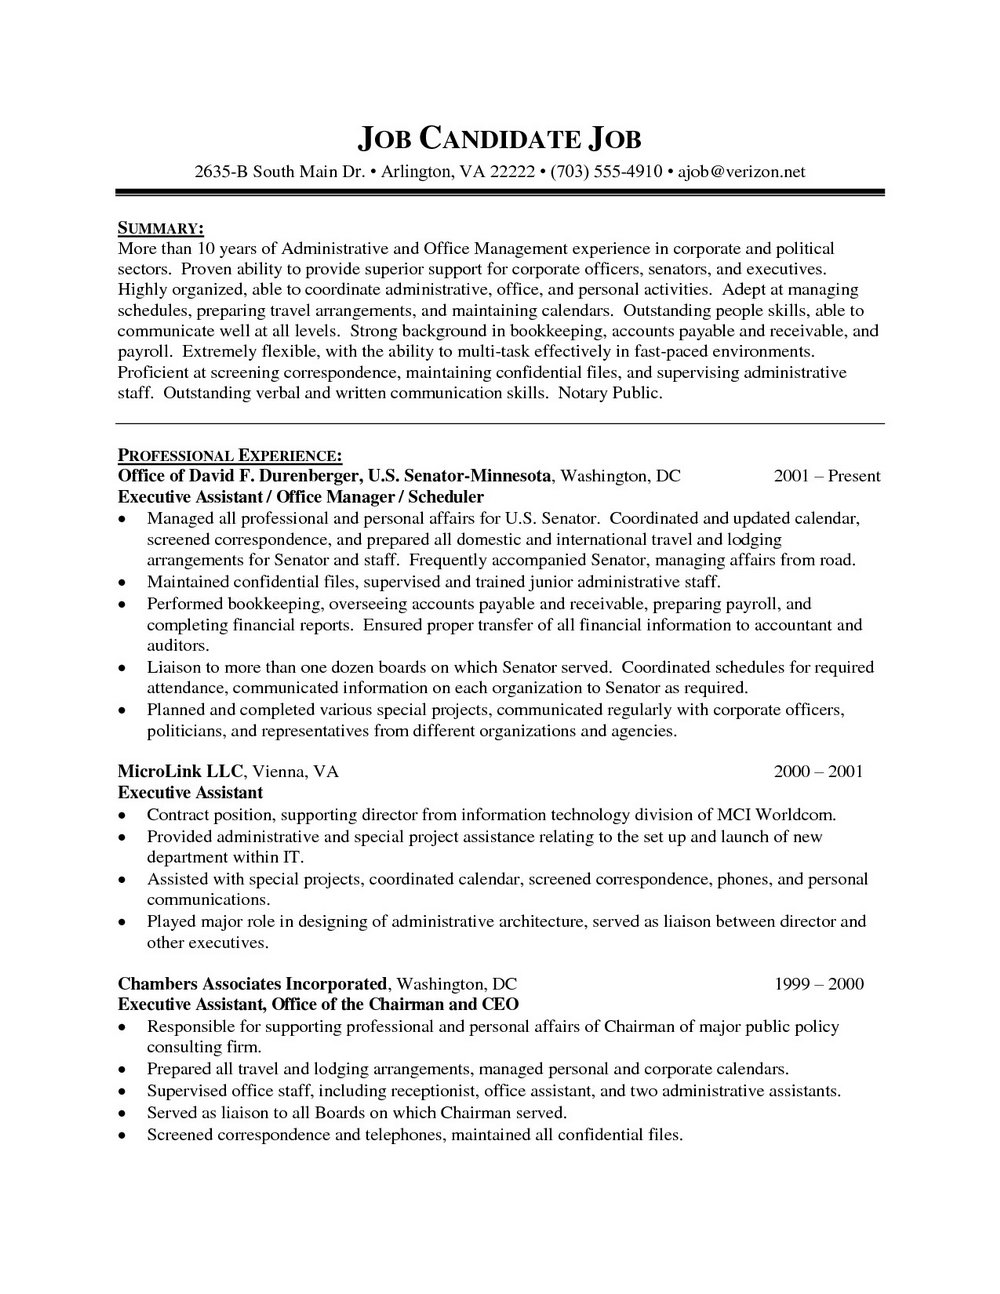 Executive Assistant Cv Template Free (2)